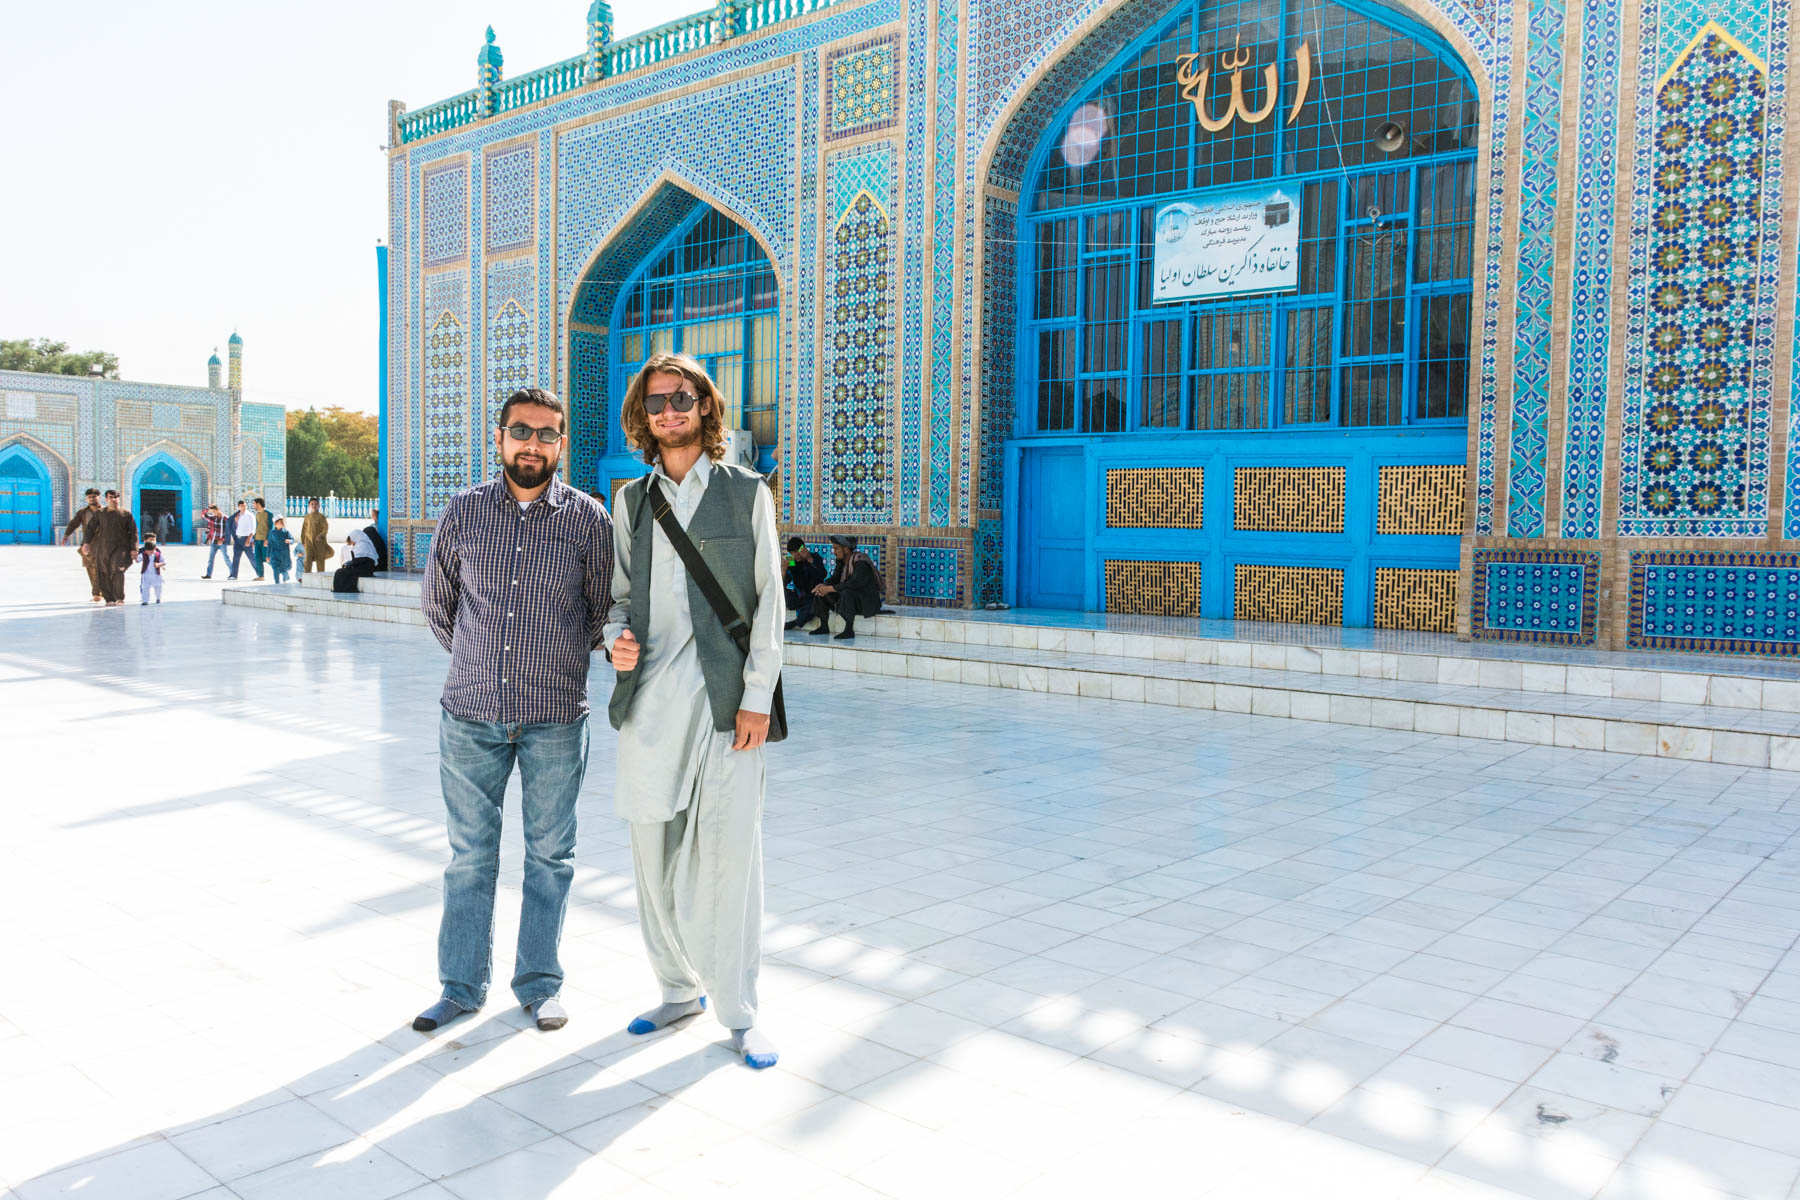 Two men standing in front of the Blue Mosque in Mazar-i-Sharif, Afghanistan